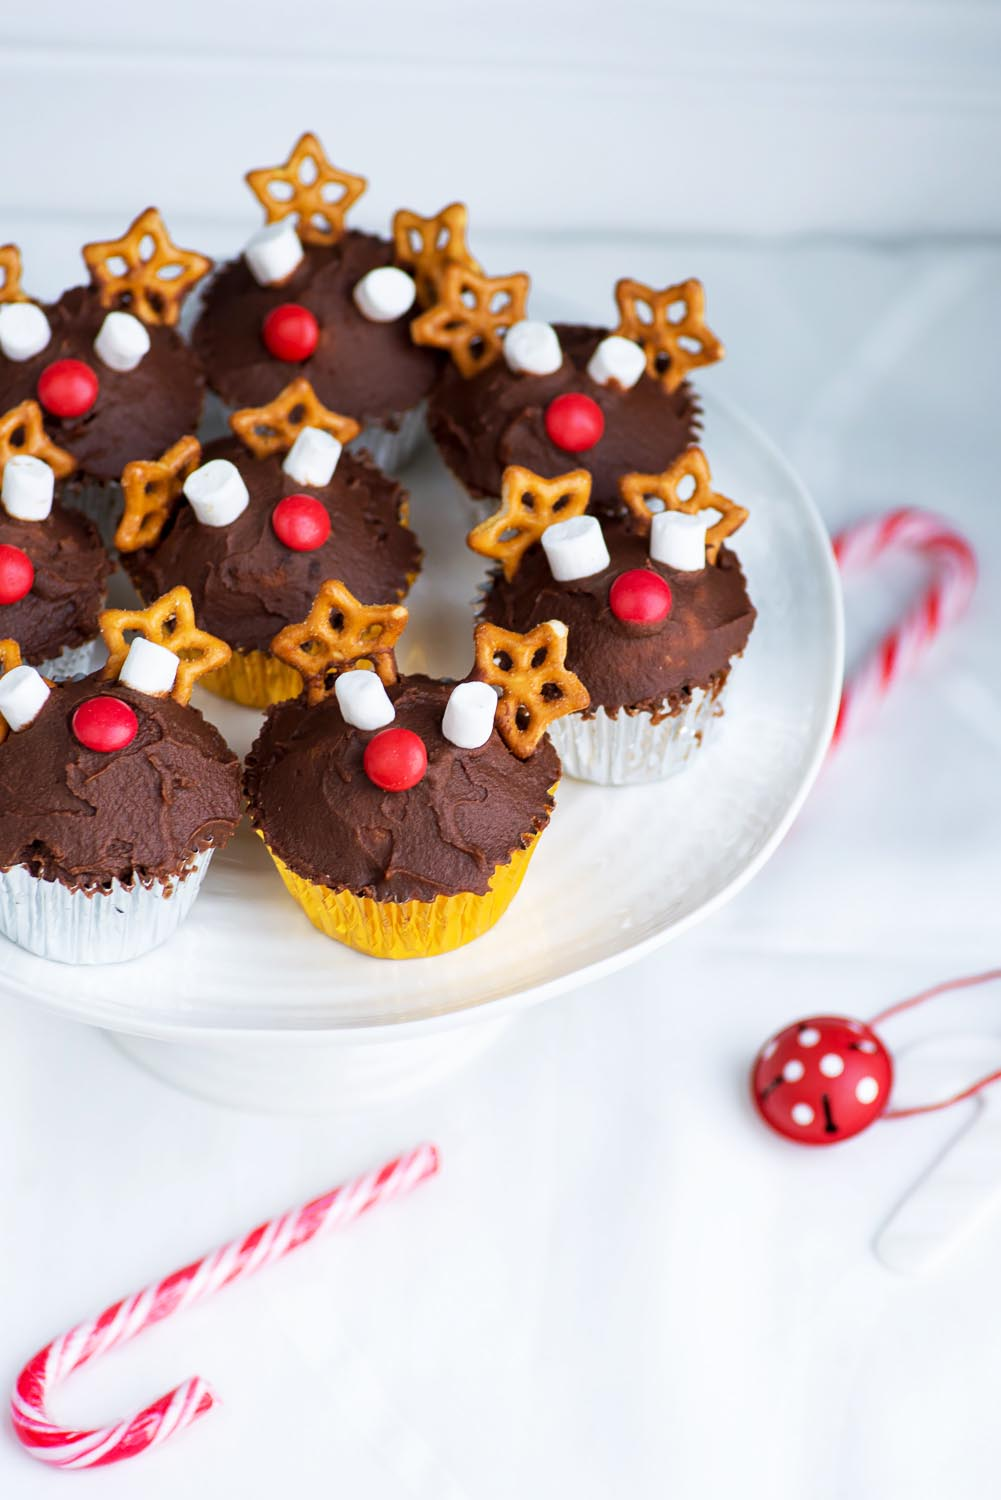 Christmas Reindeer Vanilla Cupcakes with Chocolate Buttercream Frosting